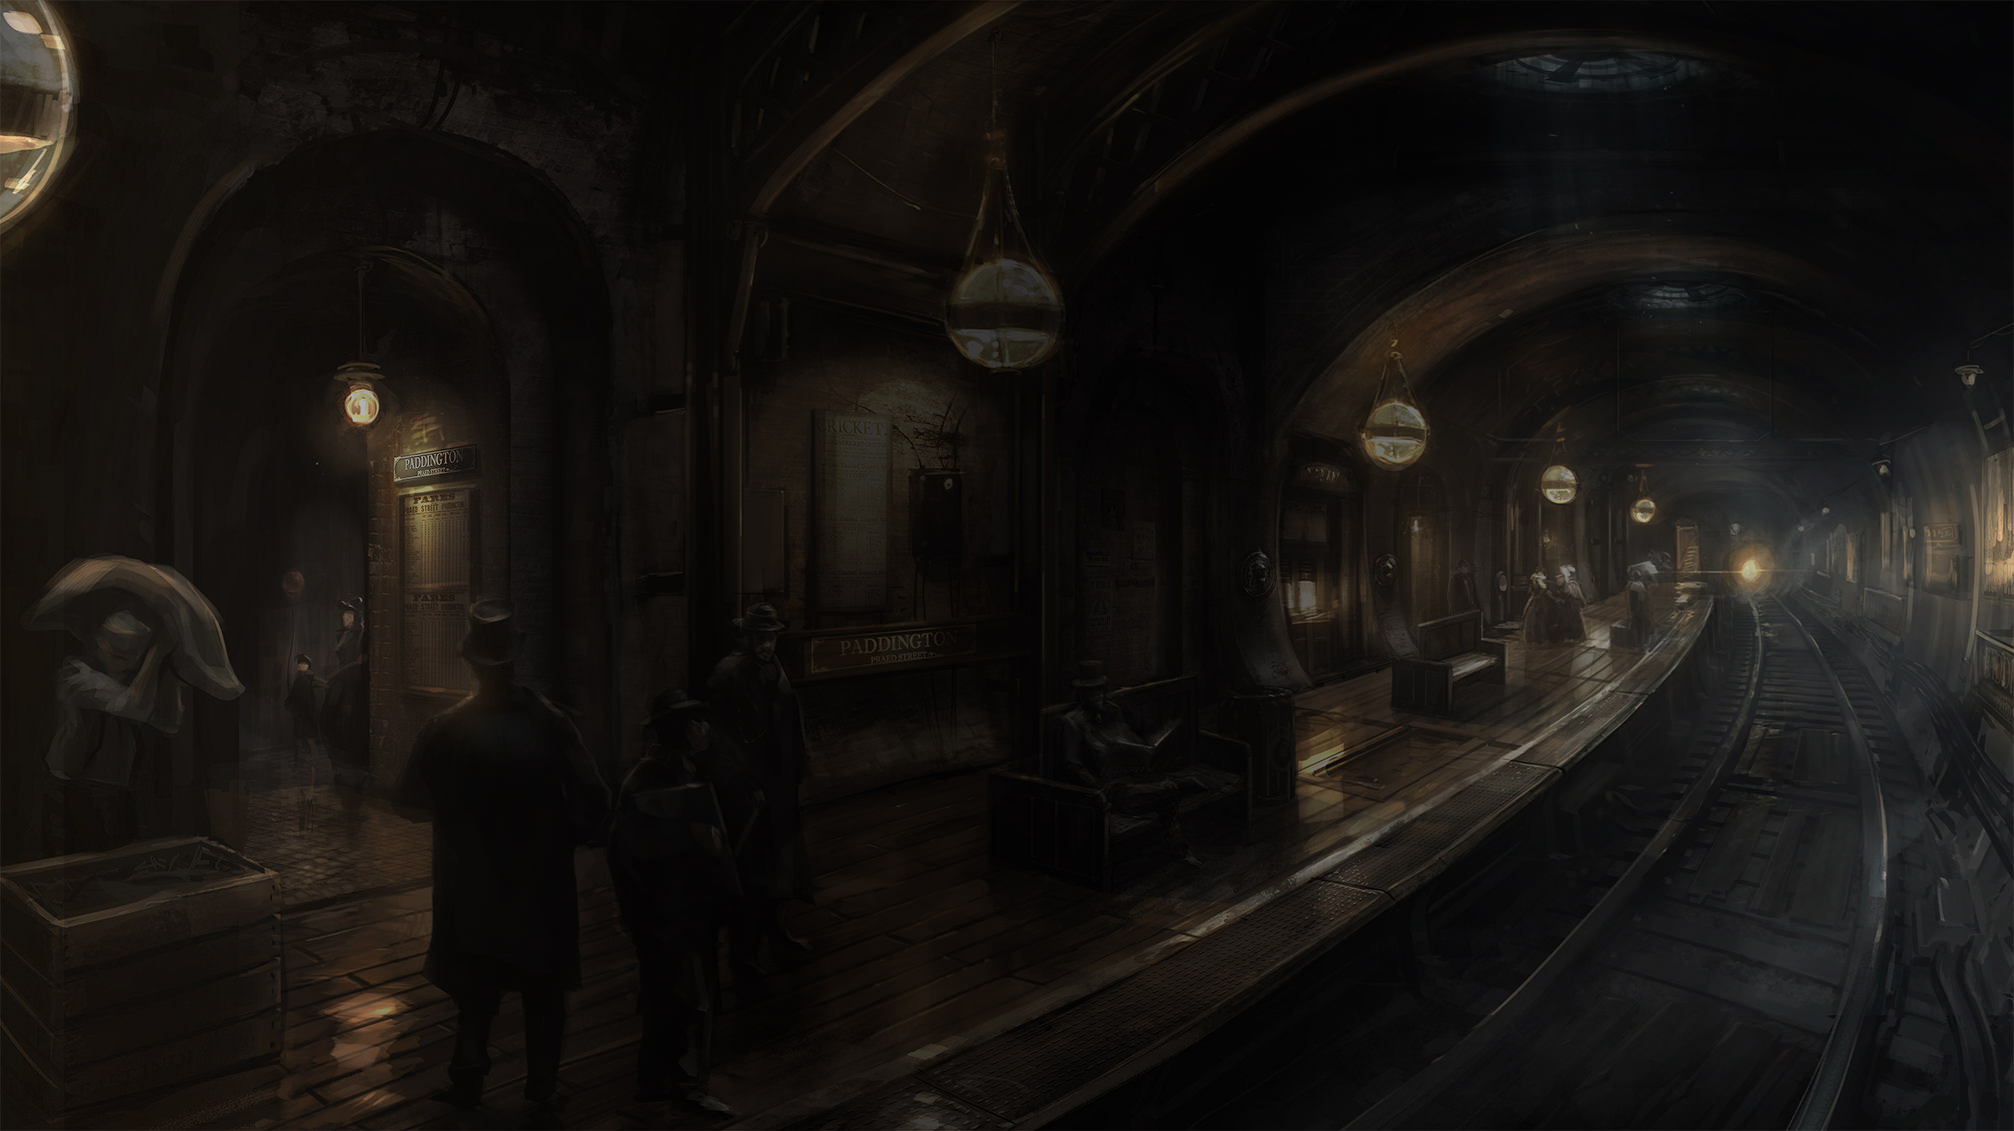 The Order 1886 U-Bahn Artwork